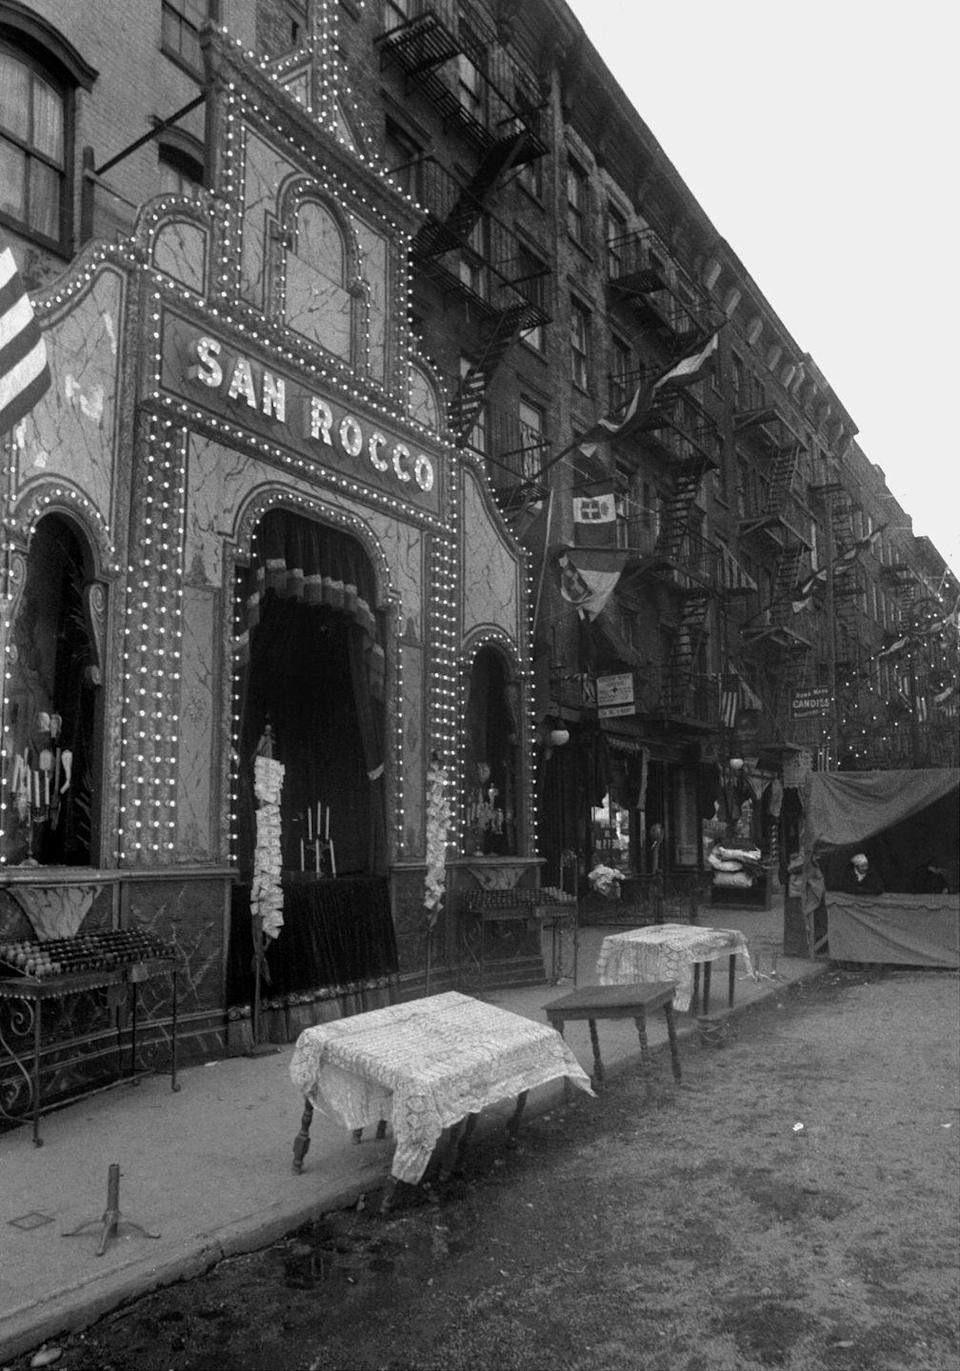 <p>The exterior of the restaurant San Rocco in Little Italy served as the filming location for when Don Vito became the head of the crime family. </p>